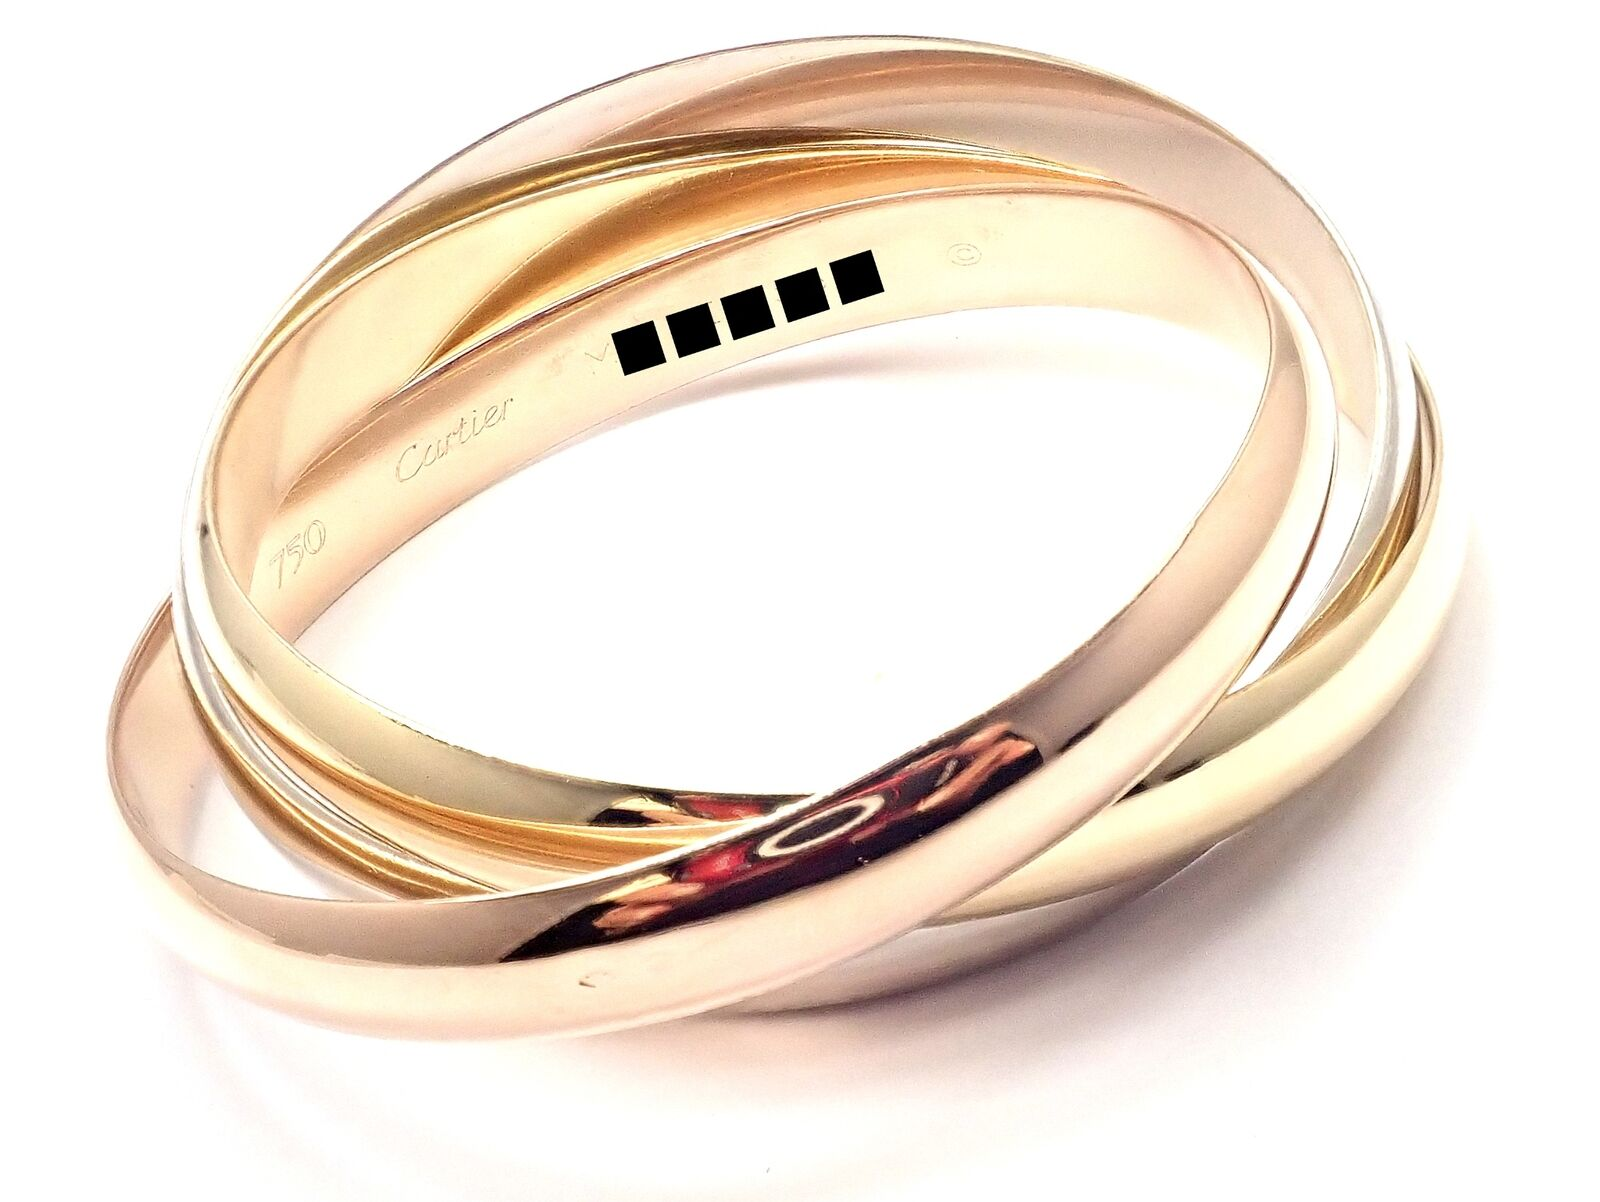 Cartier 18k Tricolor Gold Trinity Large Model Medium Size Bangle Bracelet Cert.